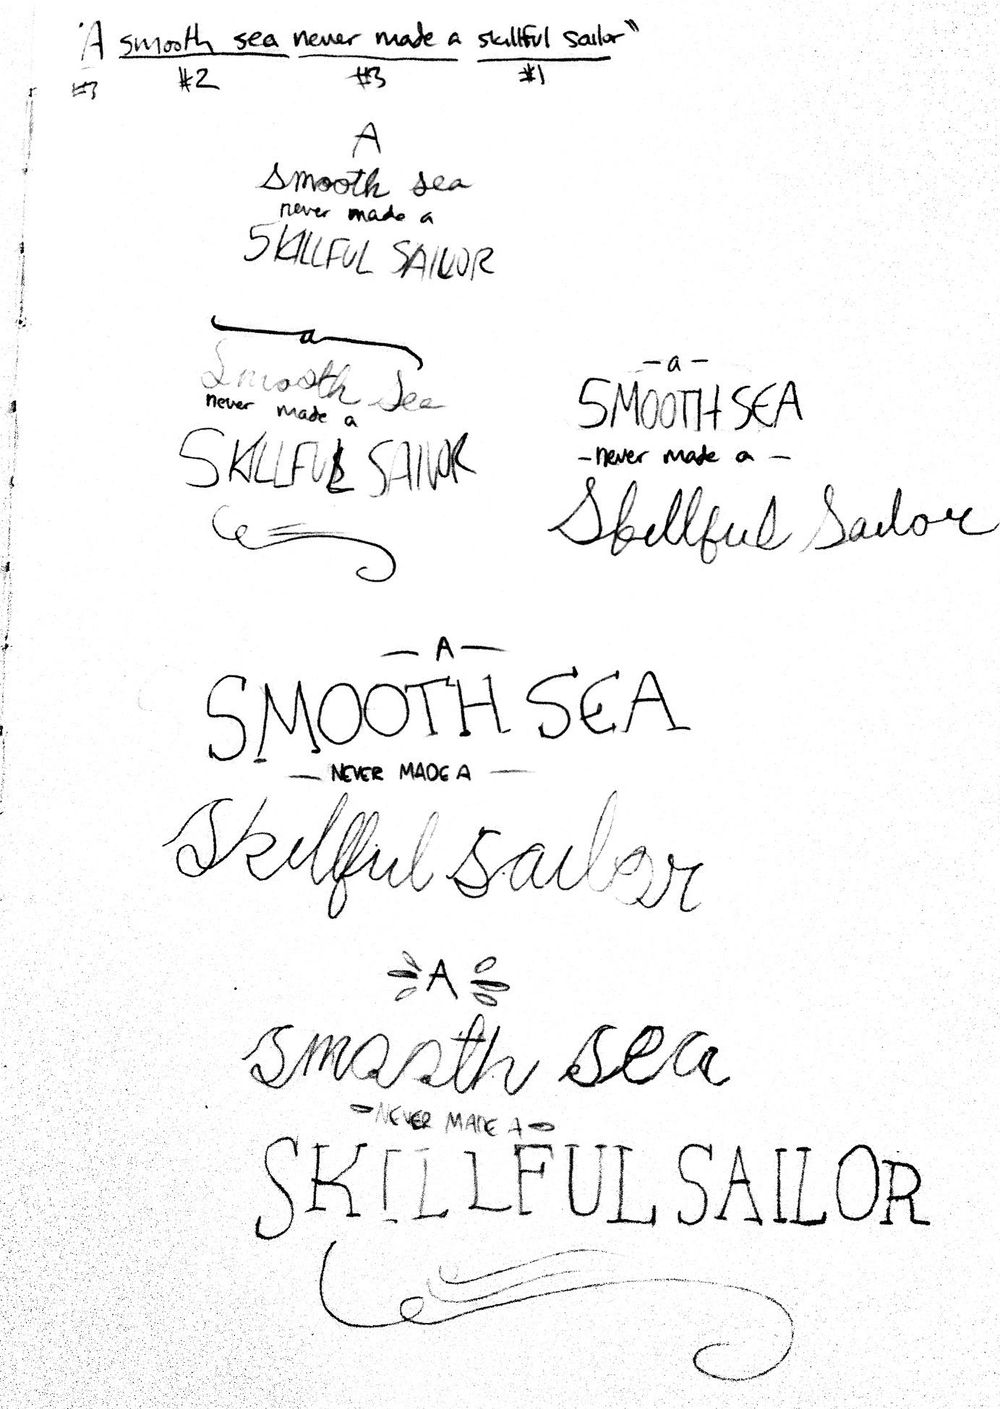 A Smooth Sea Never Made A Skillful Sailor - image 1 - student project